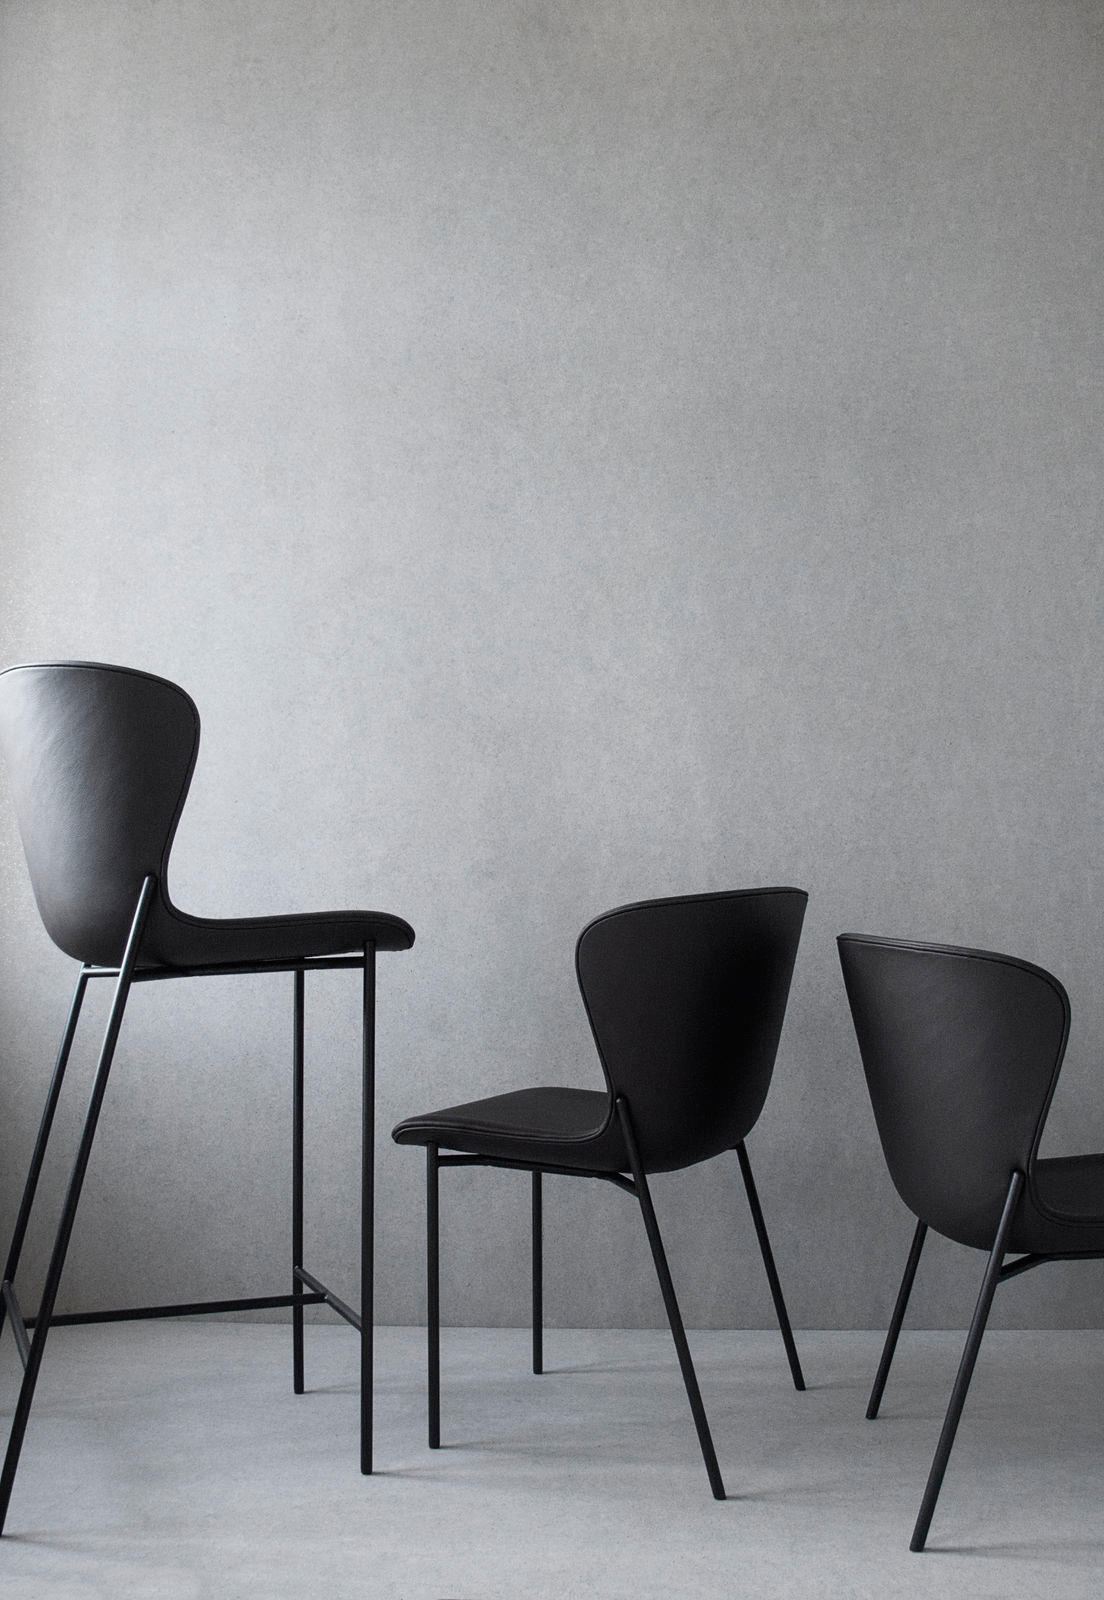 Pipe Chair La Pipe Chair Chairs From Friends And Founders Architonic